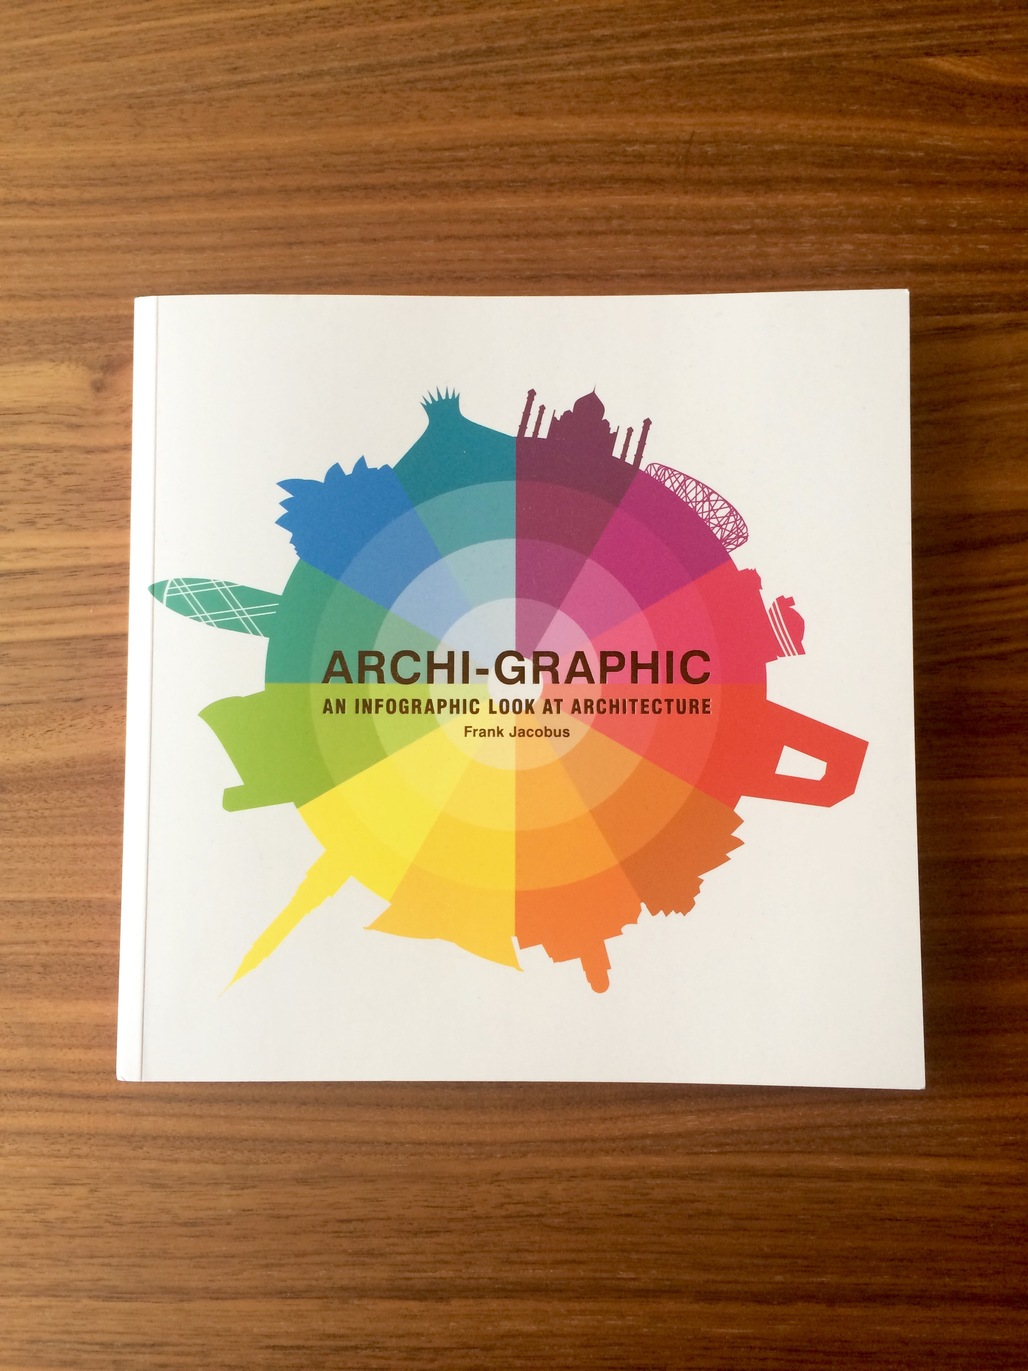 """""""Archi-Graphic: An Infographic Look at Architecture"""" By Frank Jacobus. Published by Laurence King Publishing. Photo: Justine Testado."""